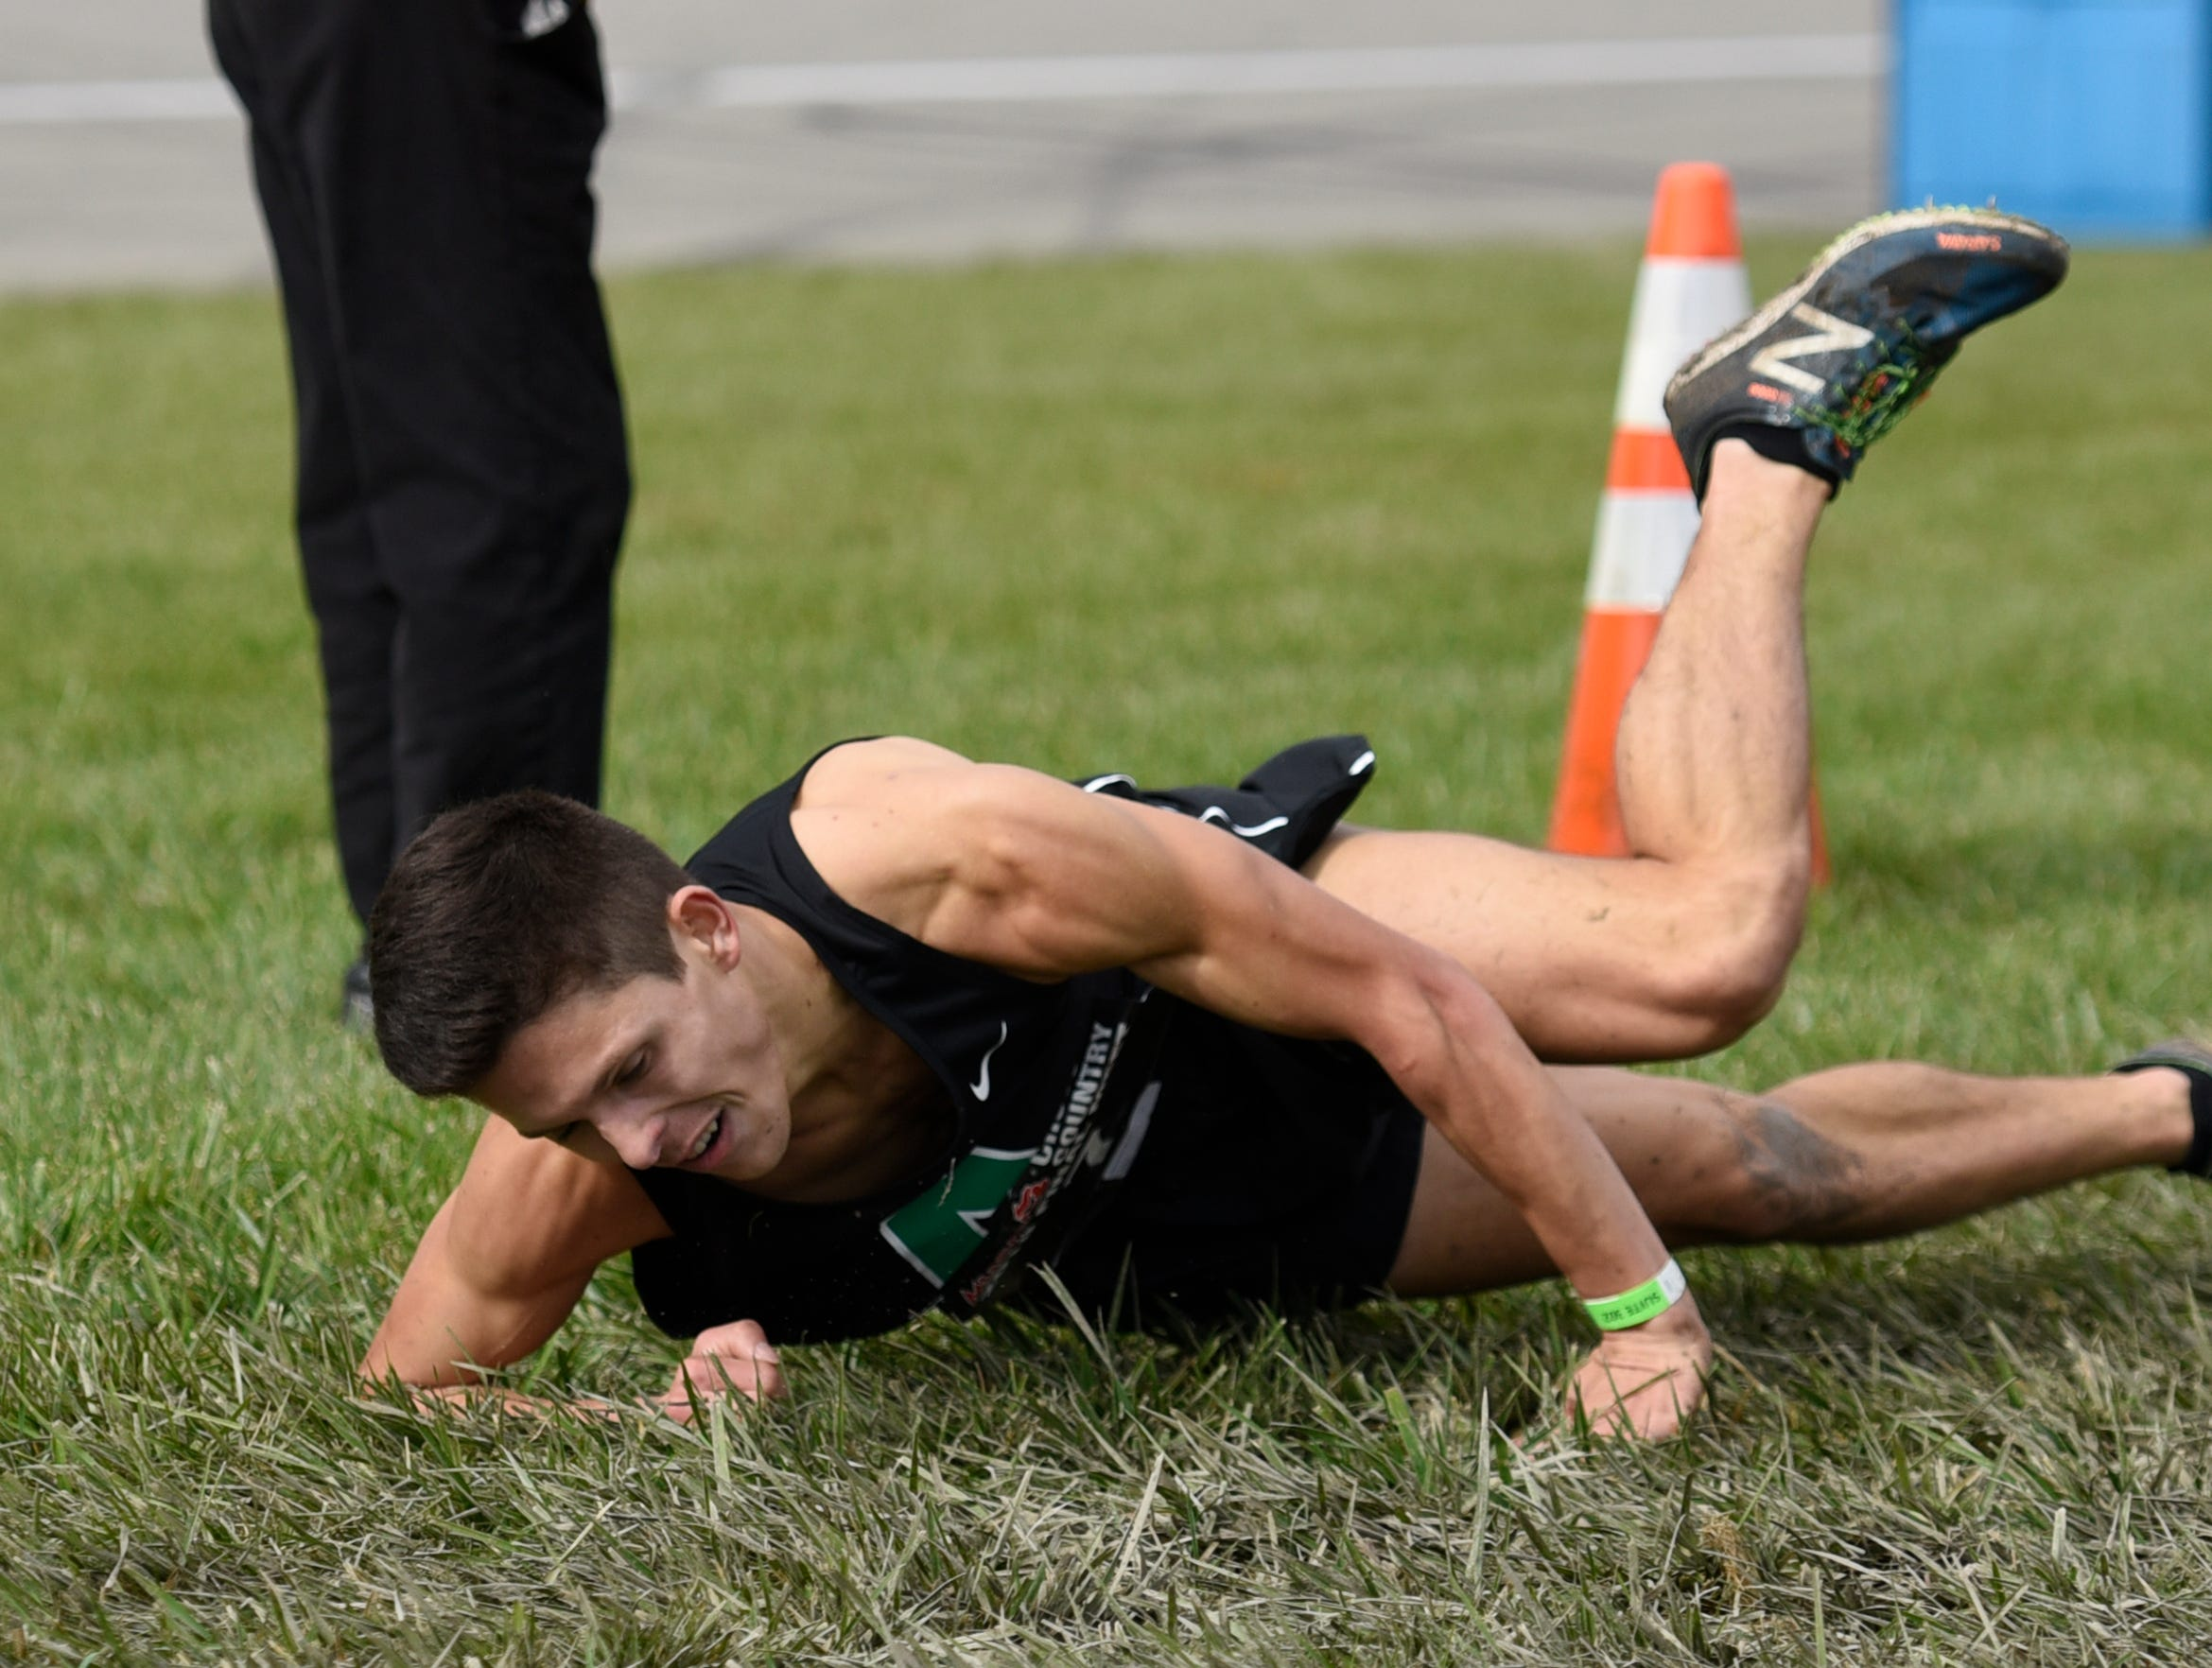 Alpena's Josh Smith takes a tumble in the soggy grass near the finish line of the Division 1 2018 cross country finals at Michigan International Speedway.